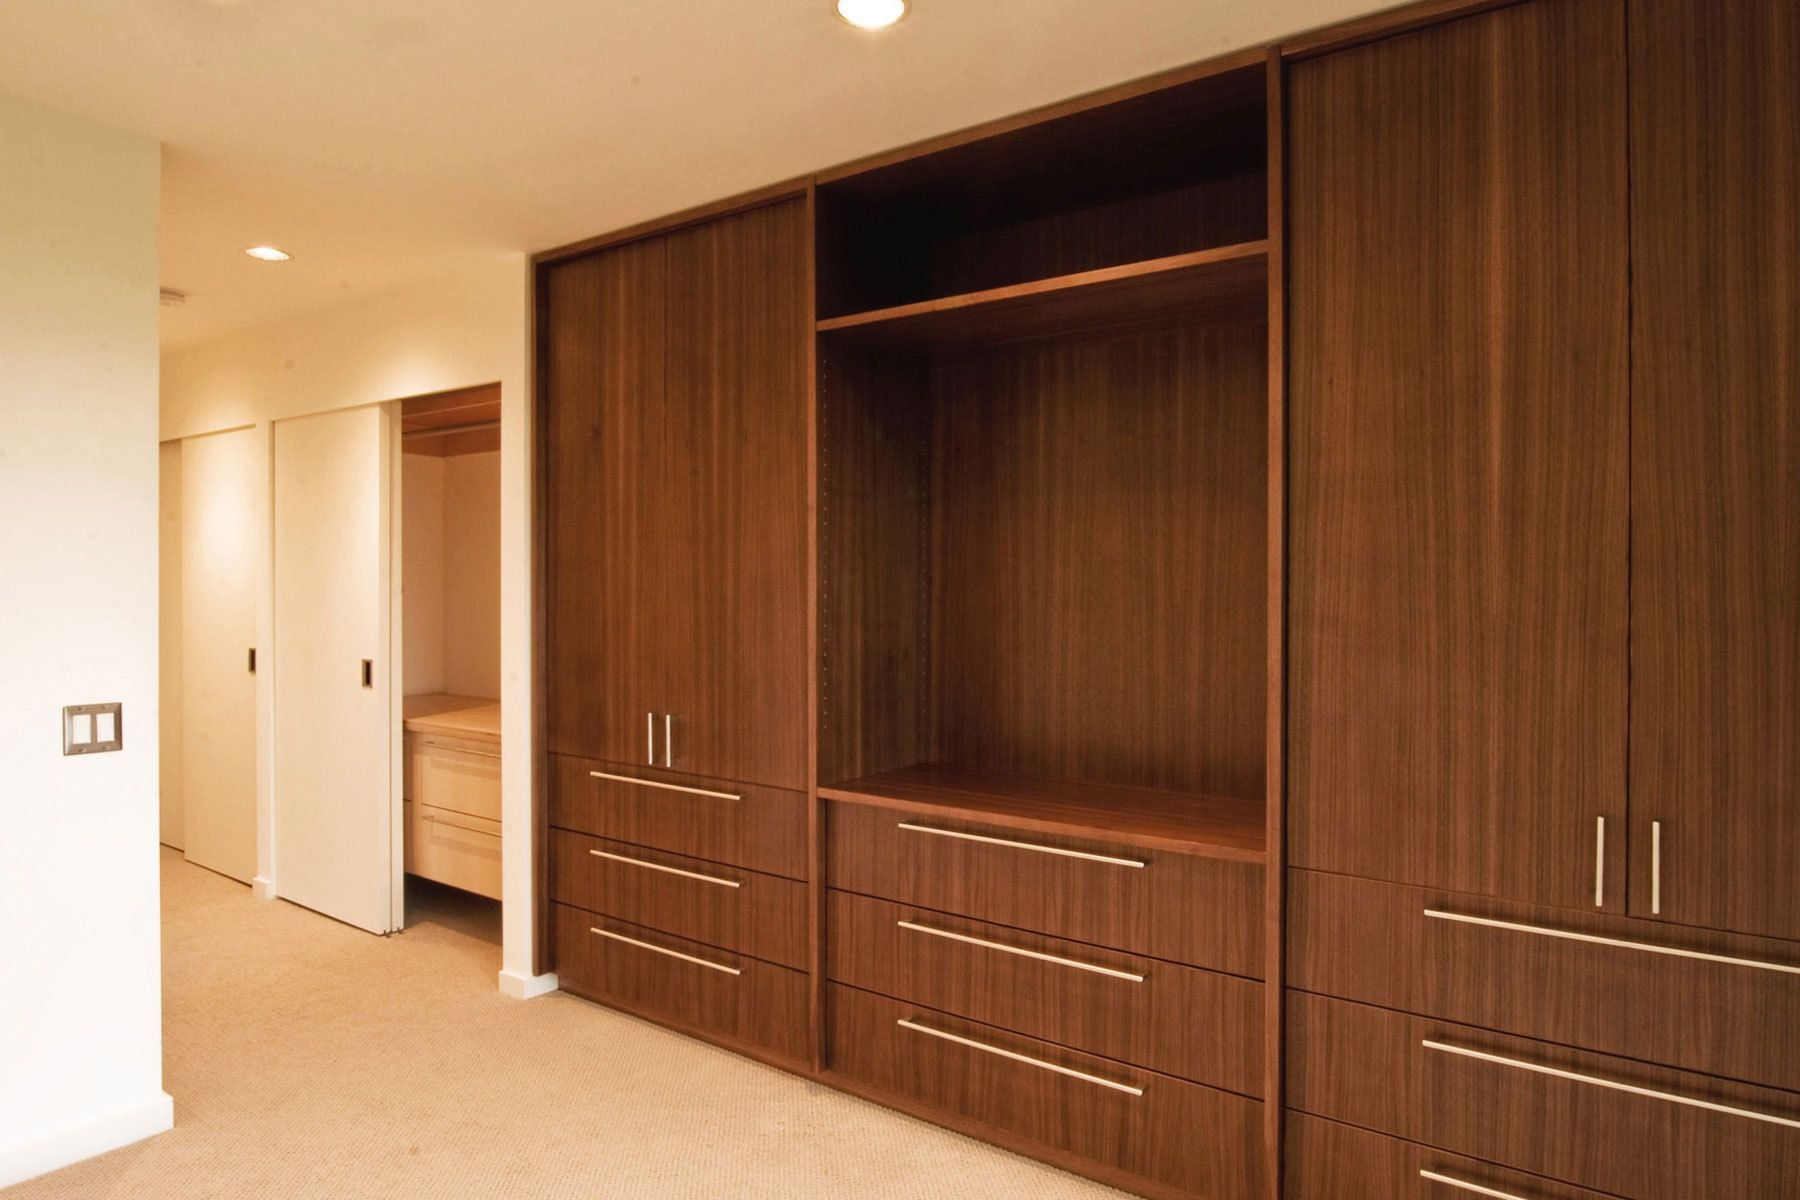 Simple Bedroom Built In Cabinet Design latest tv cabinet designs. outdoor tv cabinet ideas outdoor tv